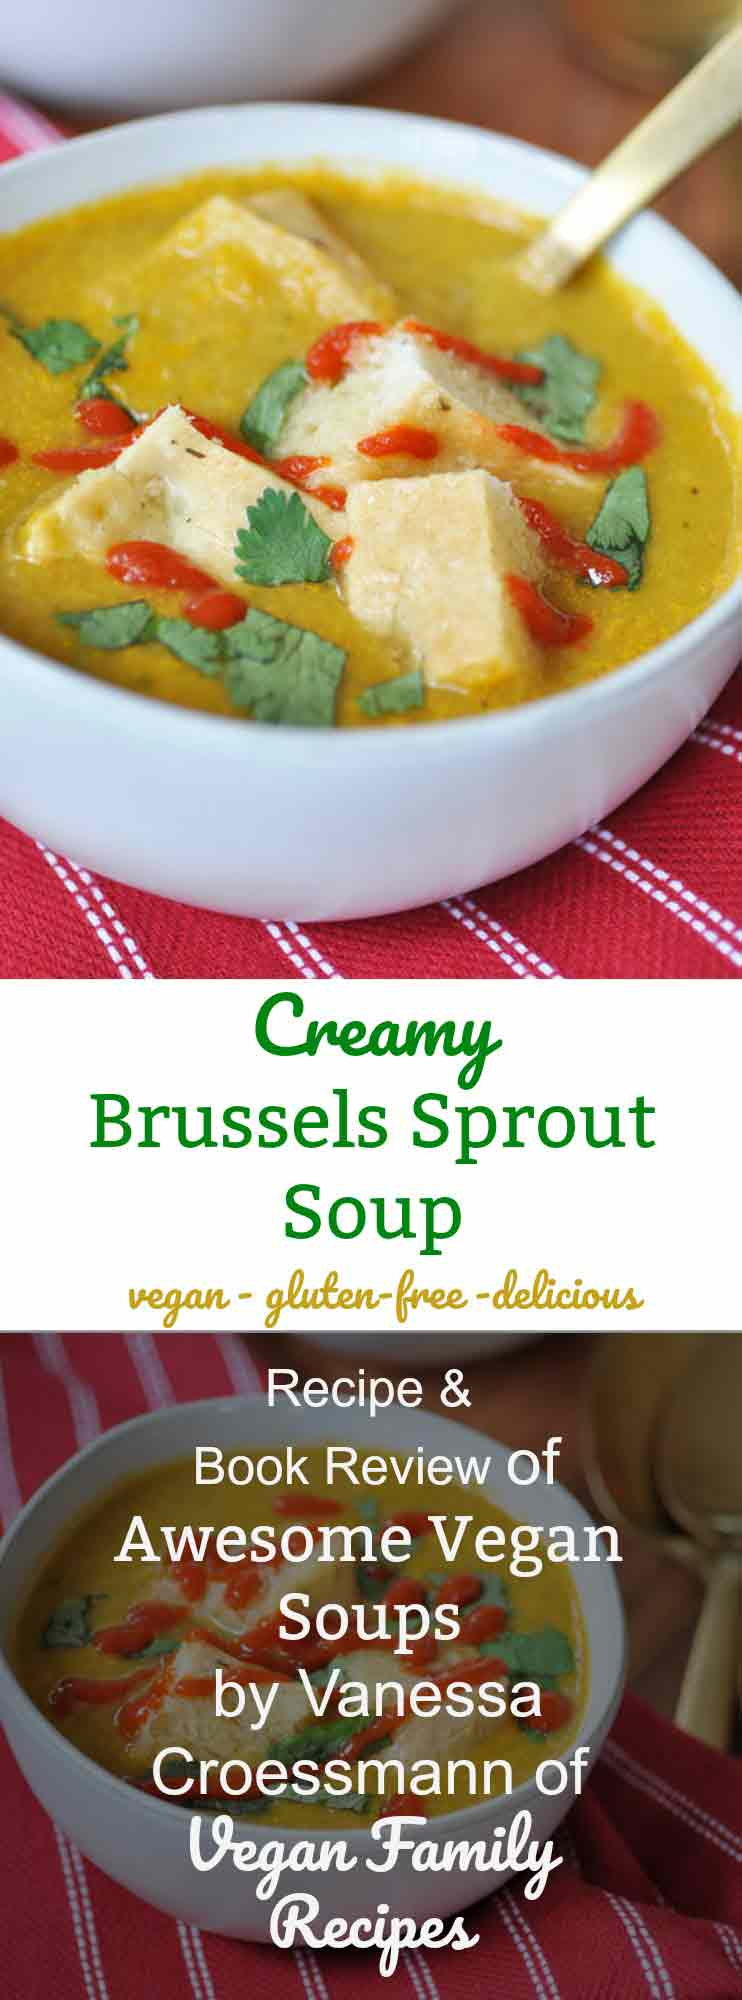 Creamy Brussels Sprout Soup for Pinterest.